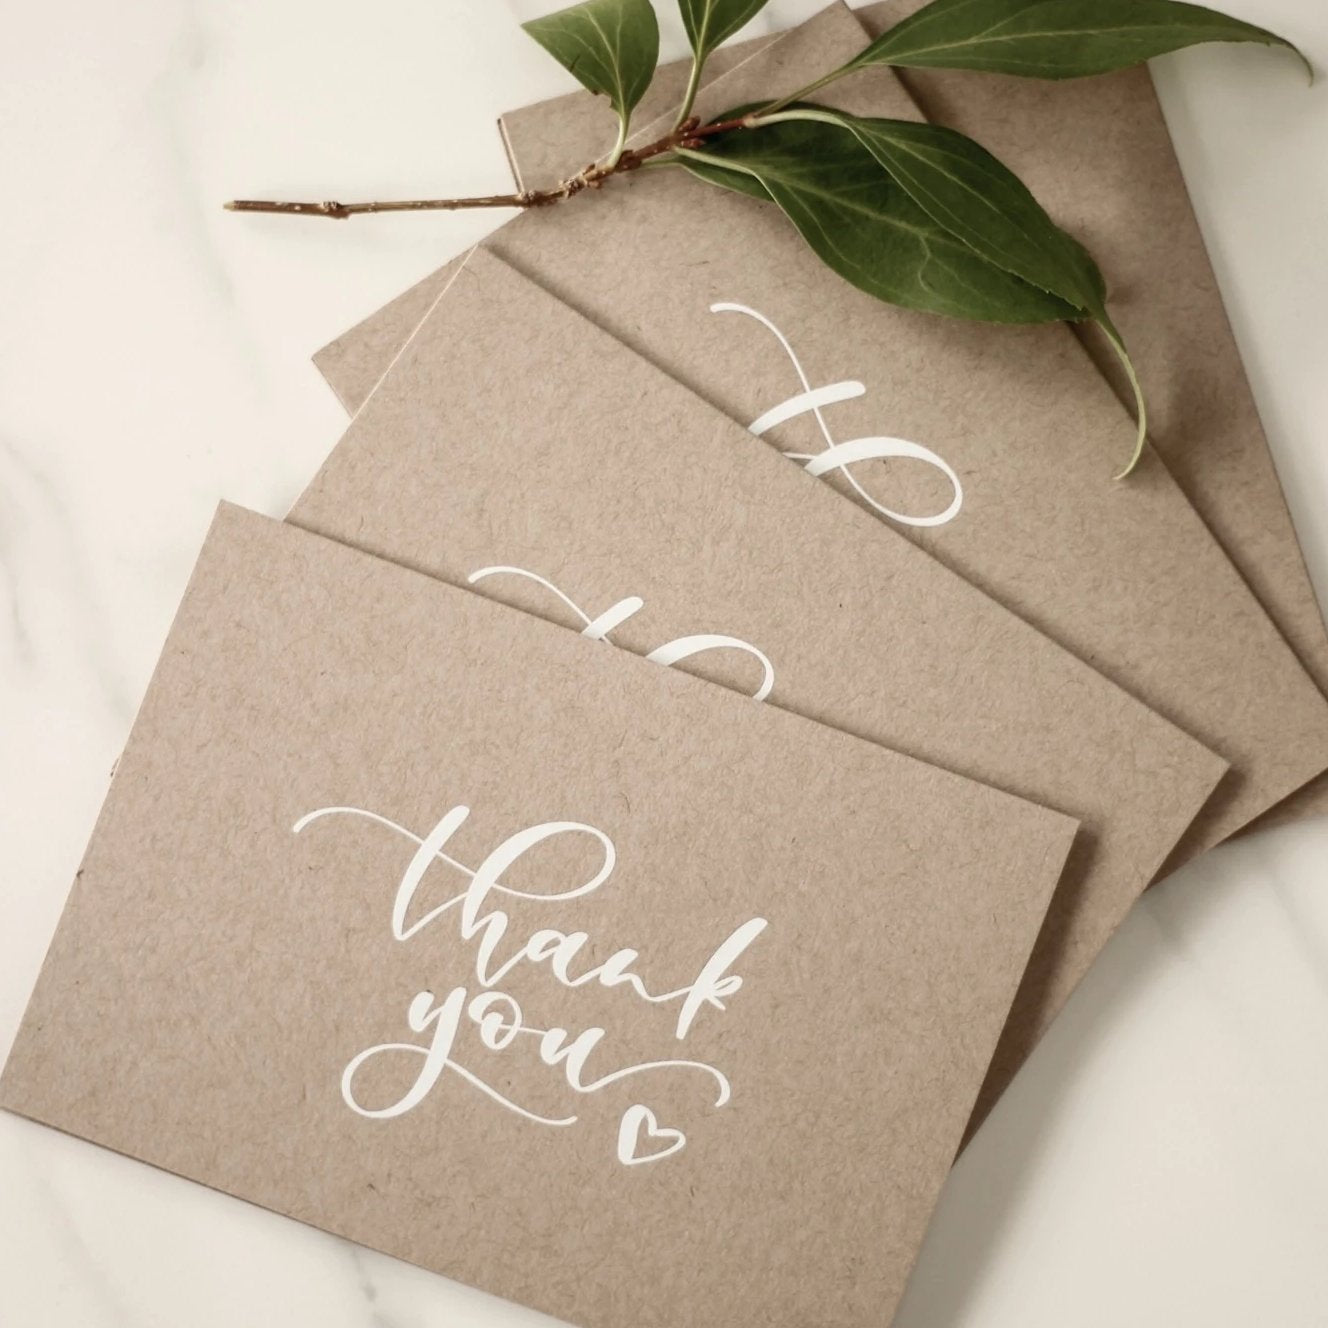 Pack of 12 Thank You Cards on Kraft Card